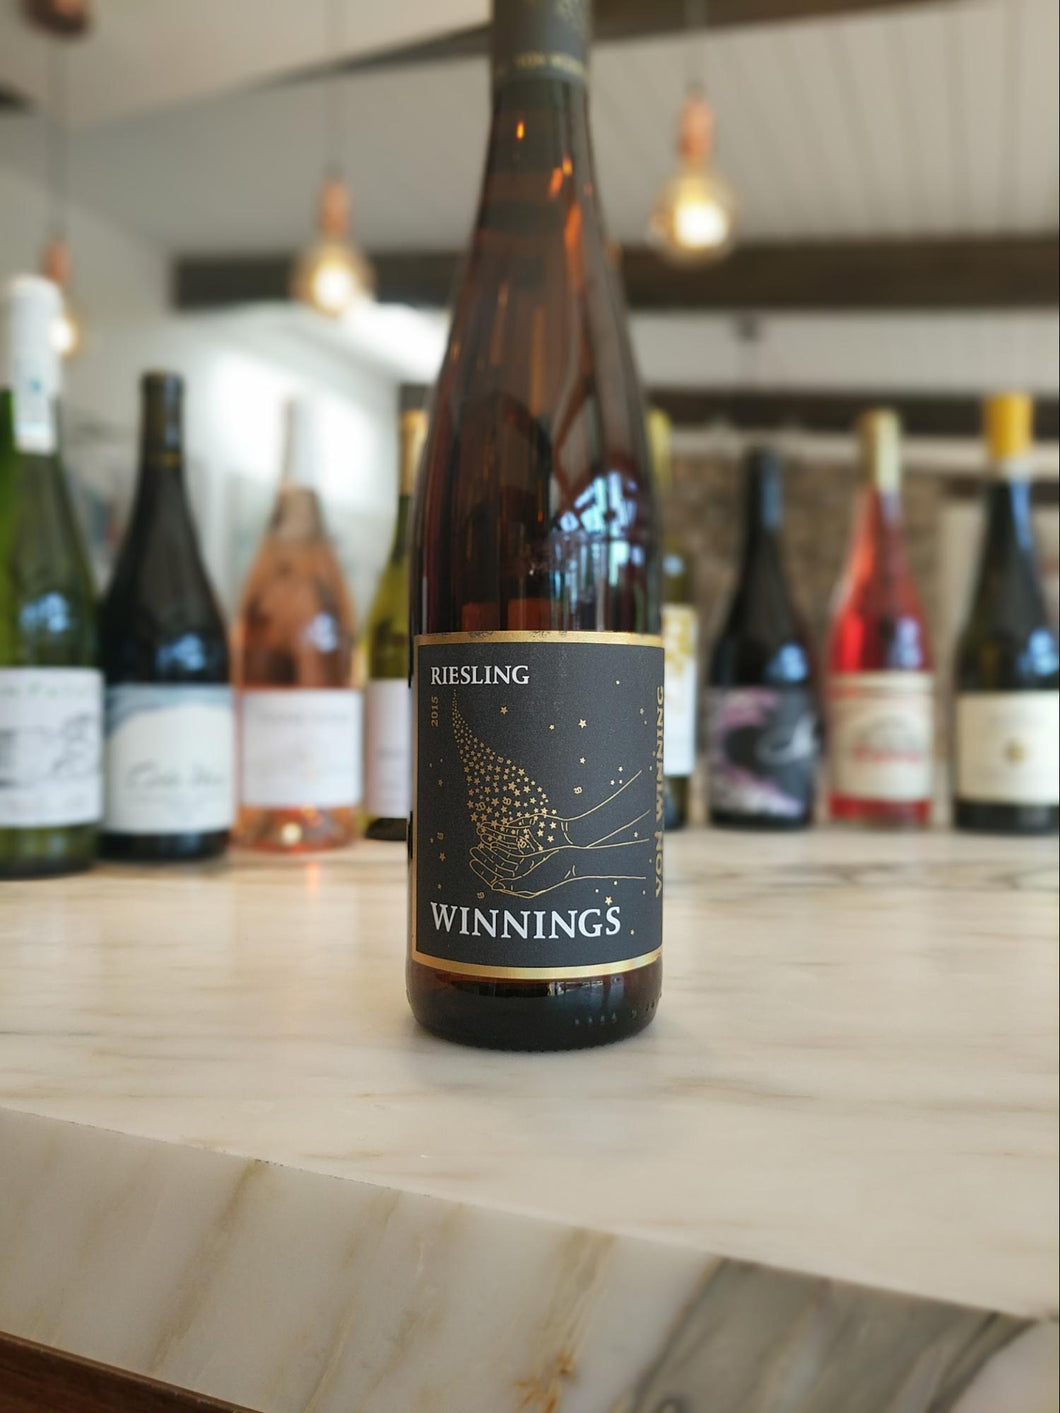 Von Winning- 2015 'Winnings' (Riesling) - Pfalz, Germany